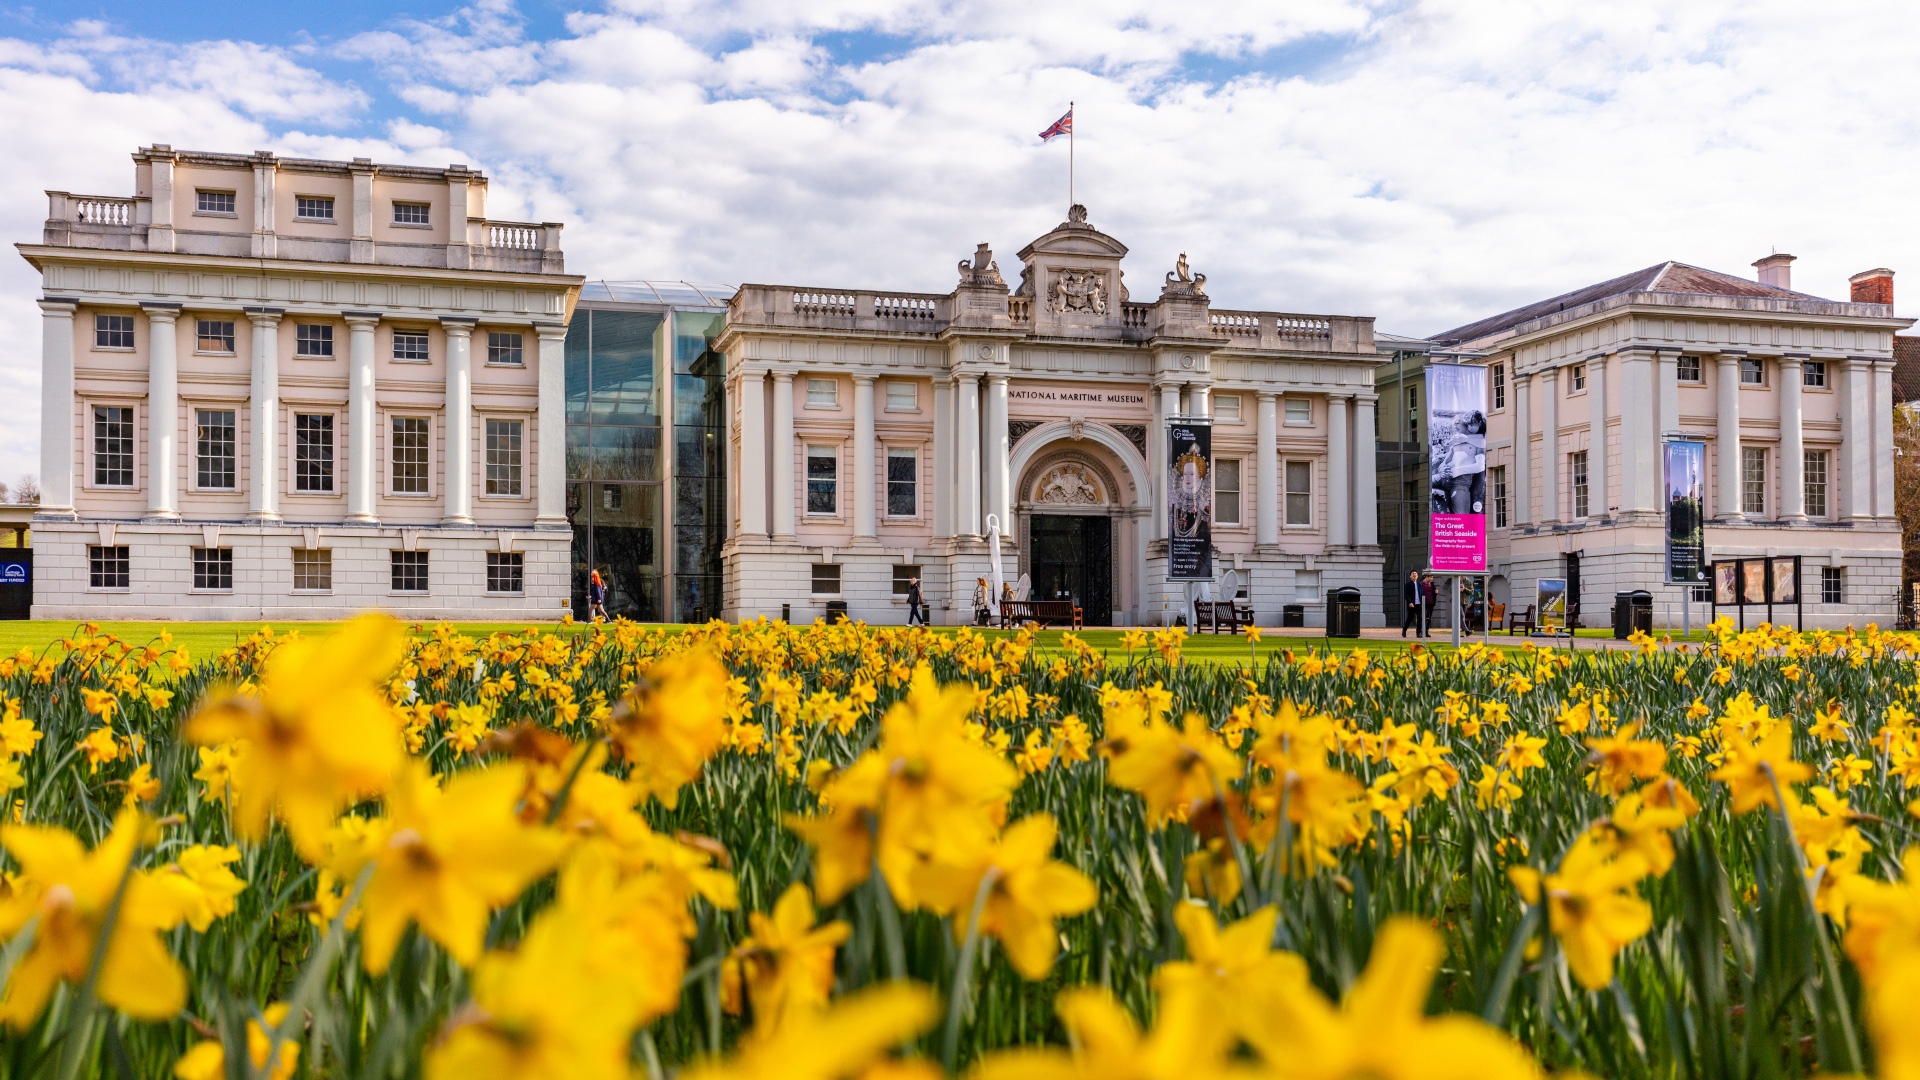 Daffodils bloom outside of the National Maritime Museum in Greenwich